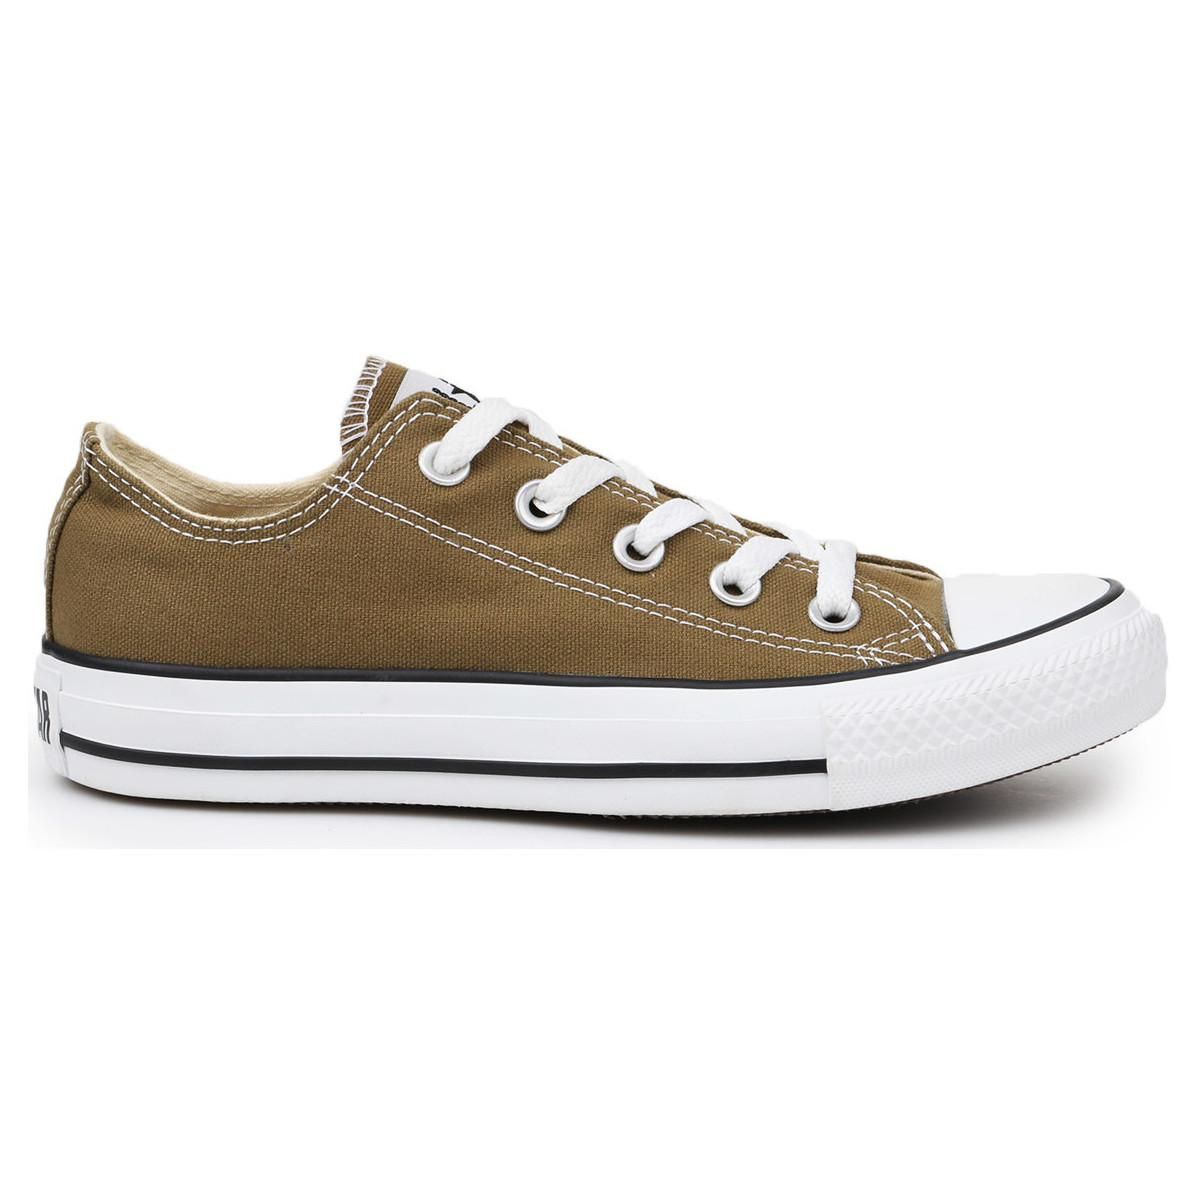 76787fafc96e Converse - Chuck Taylor All Star Ox Women s Shoes (trainers) In Brown - Lyst.  View fullscreen